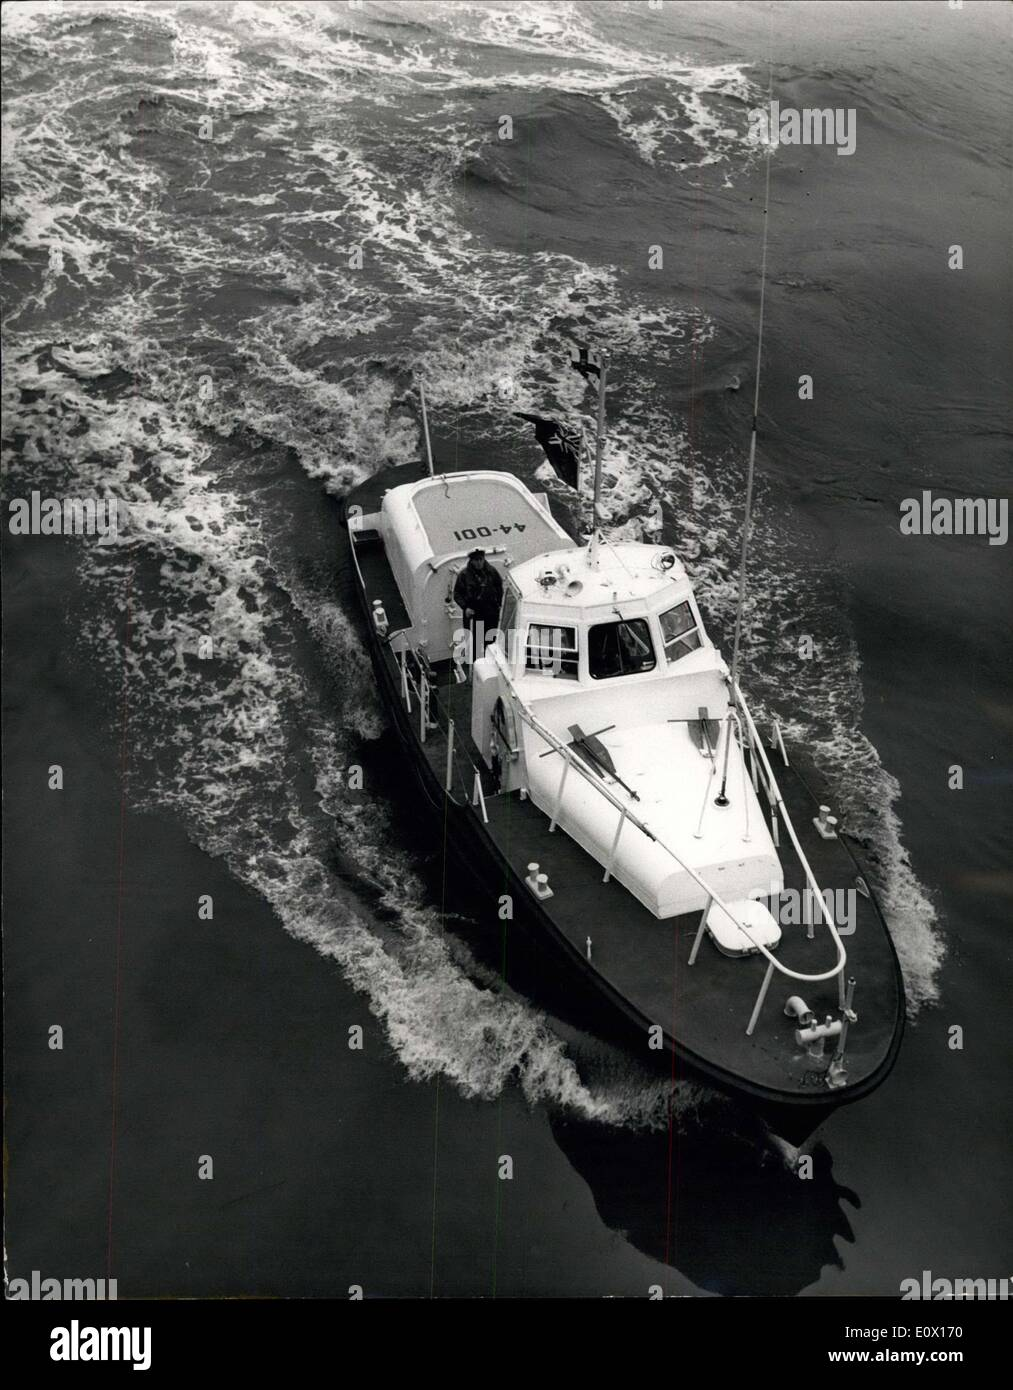 Dec. 08, 1964 - 44 ft. Steel Life-Boat From U.S. On View At Westminster Pier: A new style 44 ft. steel life-boat obtained by the Royal National Life-Boat Institution from the United States Coast Guard for the purpose of extensive trials in order to decide whether to build life-boats of this type for service off the coasts of Britain and Ireland. The trials began off Littlehampton in May 1964 - since when she has toured the coast of Britain and Ireland visiting 56 life-boat stations - and covering 4,500 miles. The craft has two diesel engines each producing 200 shaft h.p - Stock Image